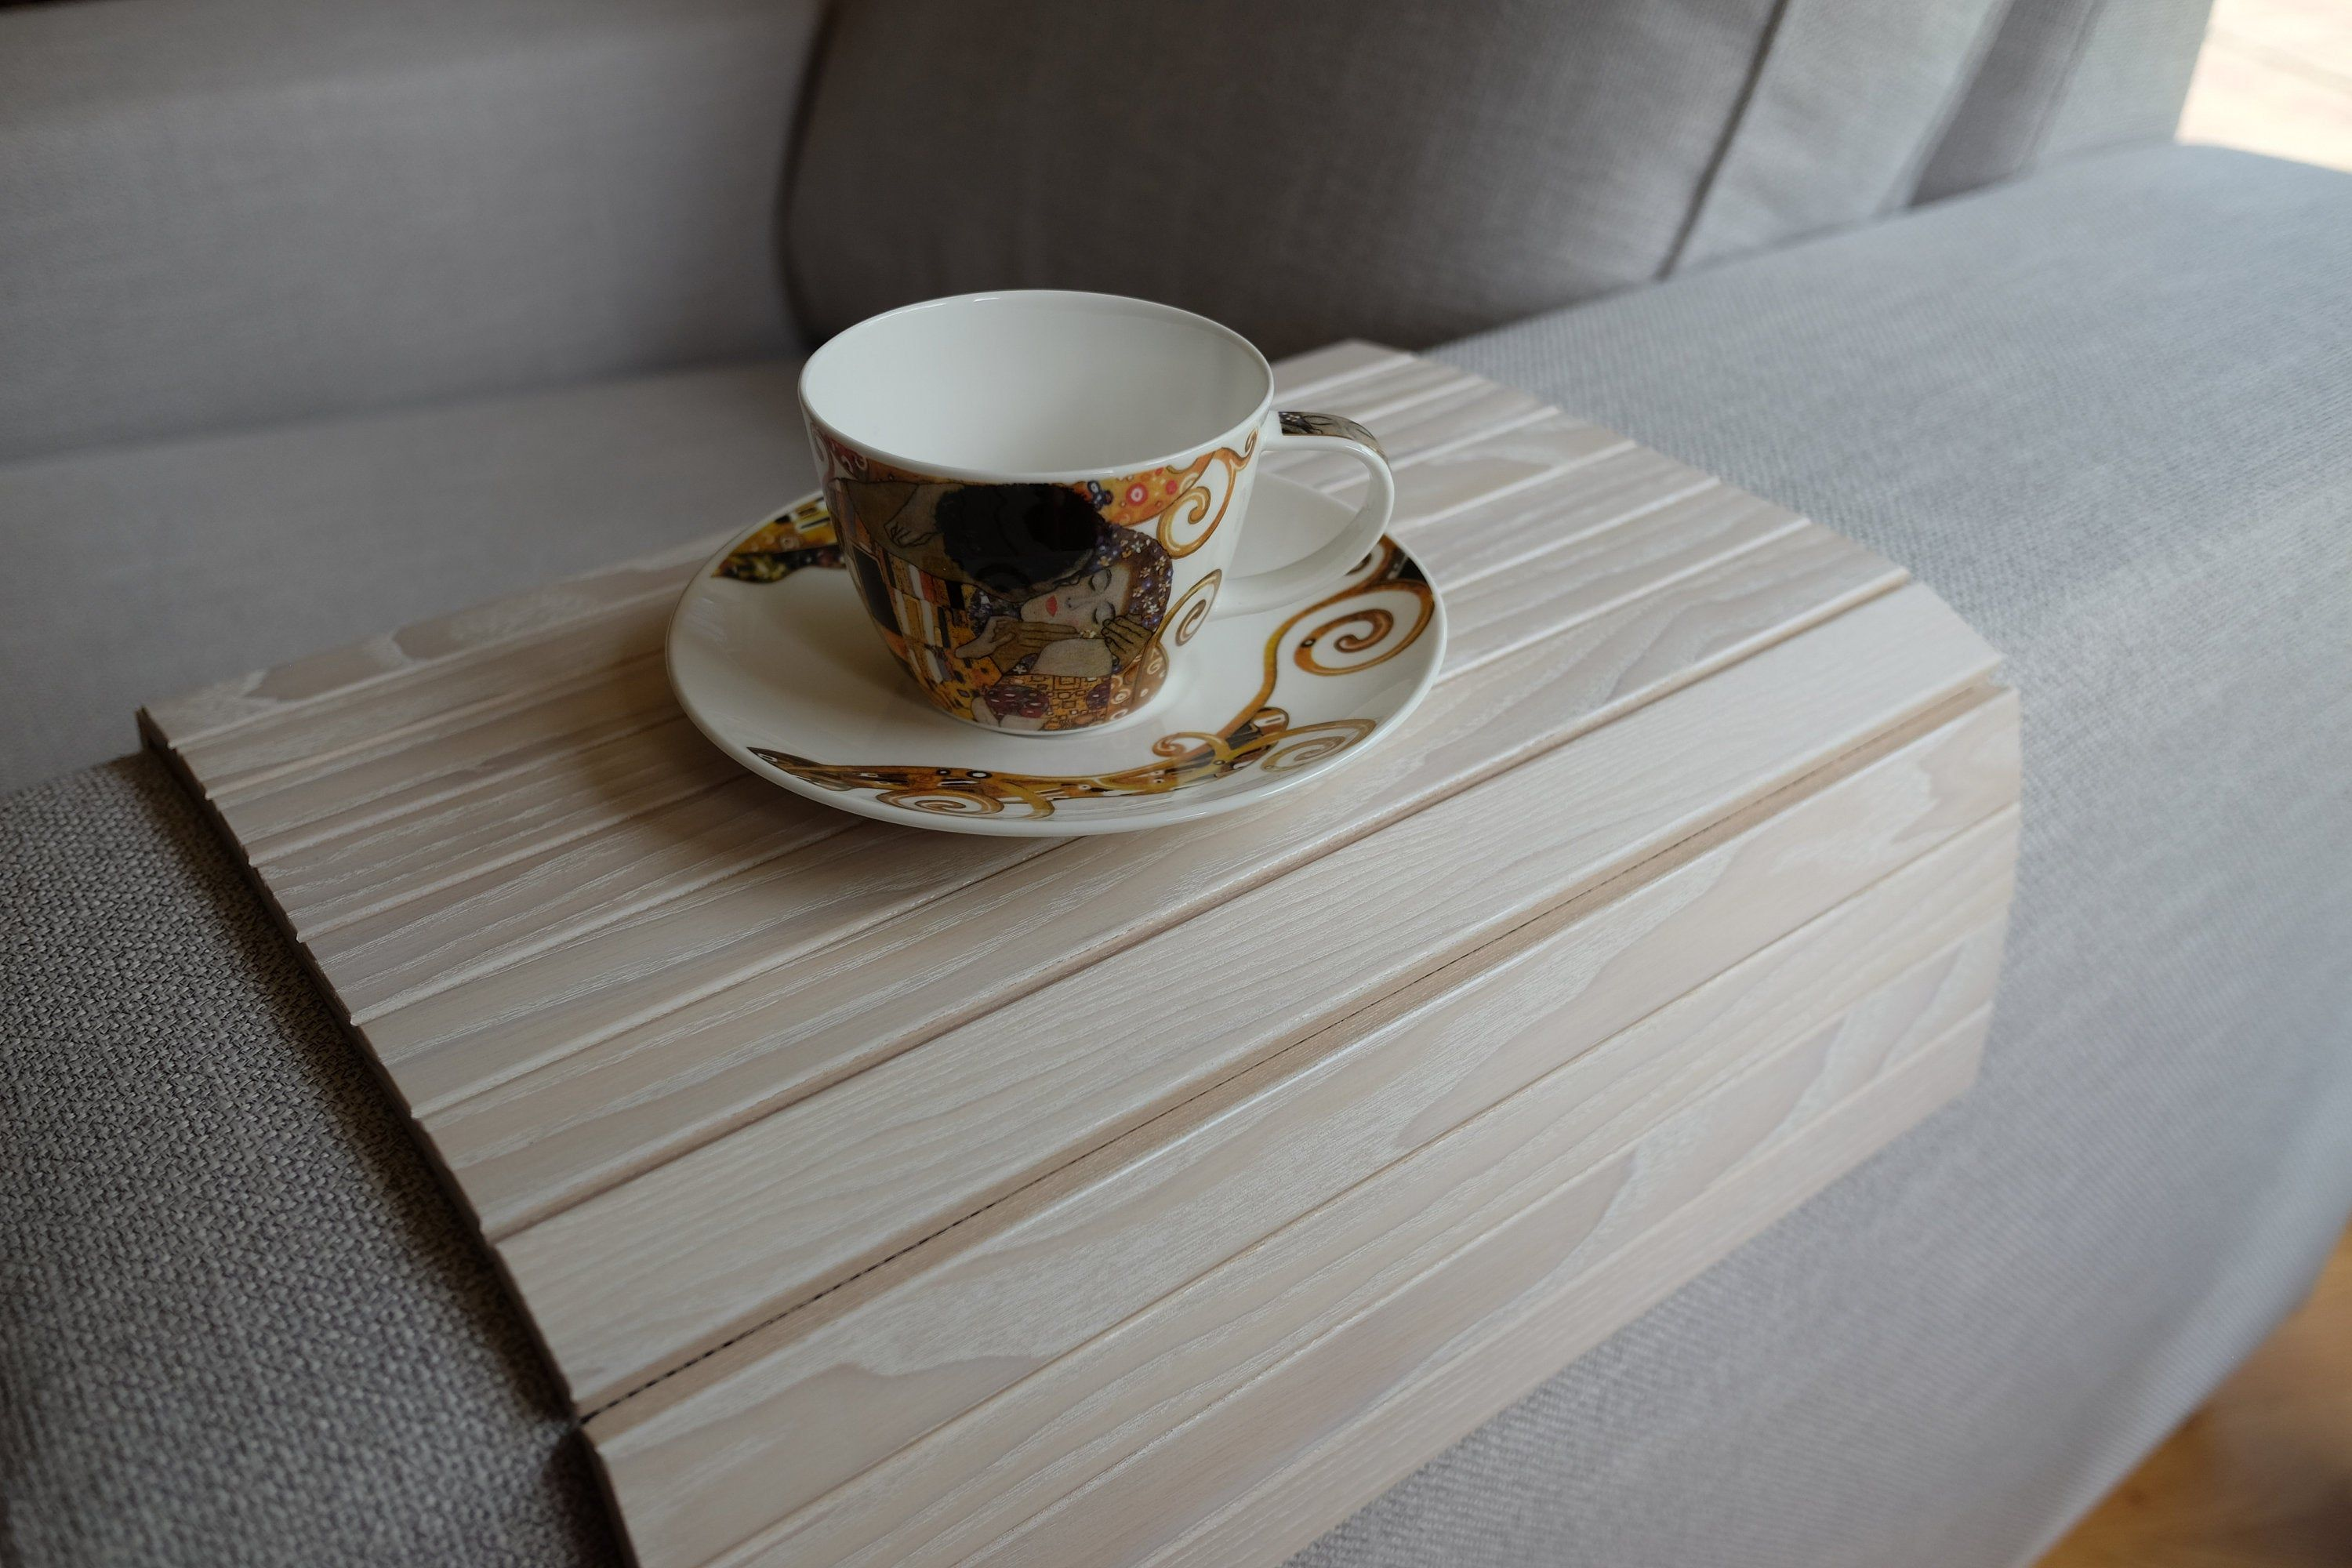 Sofa Tray Table White Tray Table Wooden Coffee Table Lap Etsy In 2020 Wooden Coffee Table Tray Table Natural Sofas